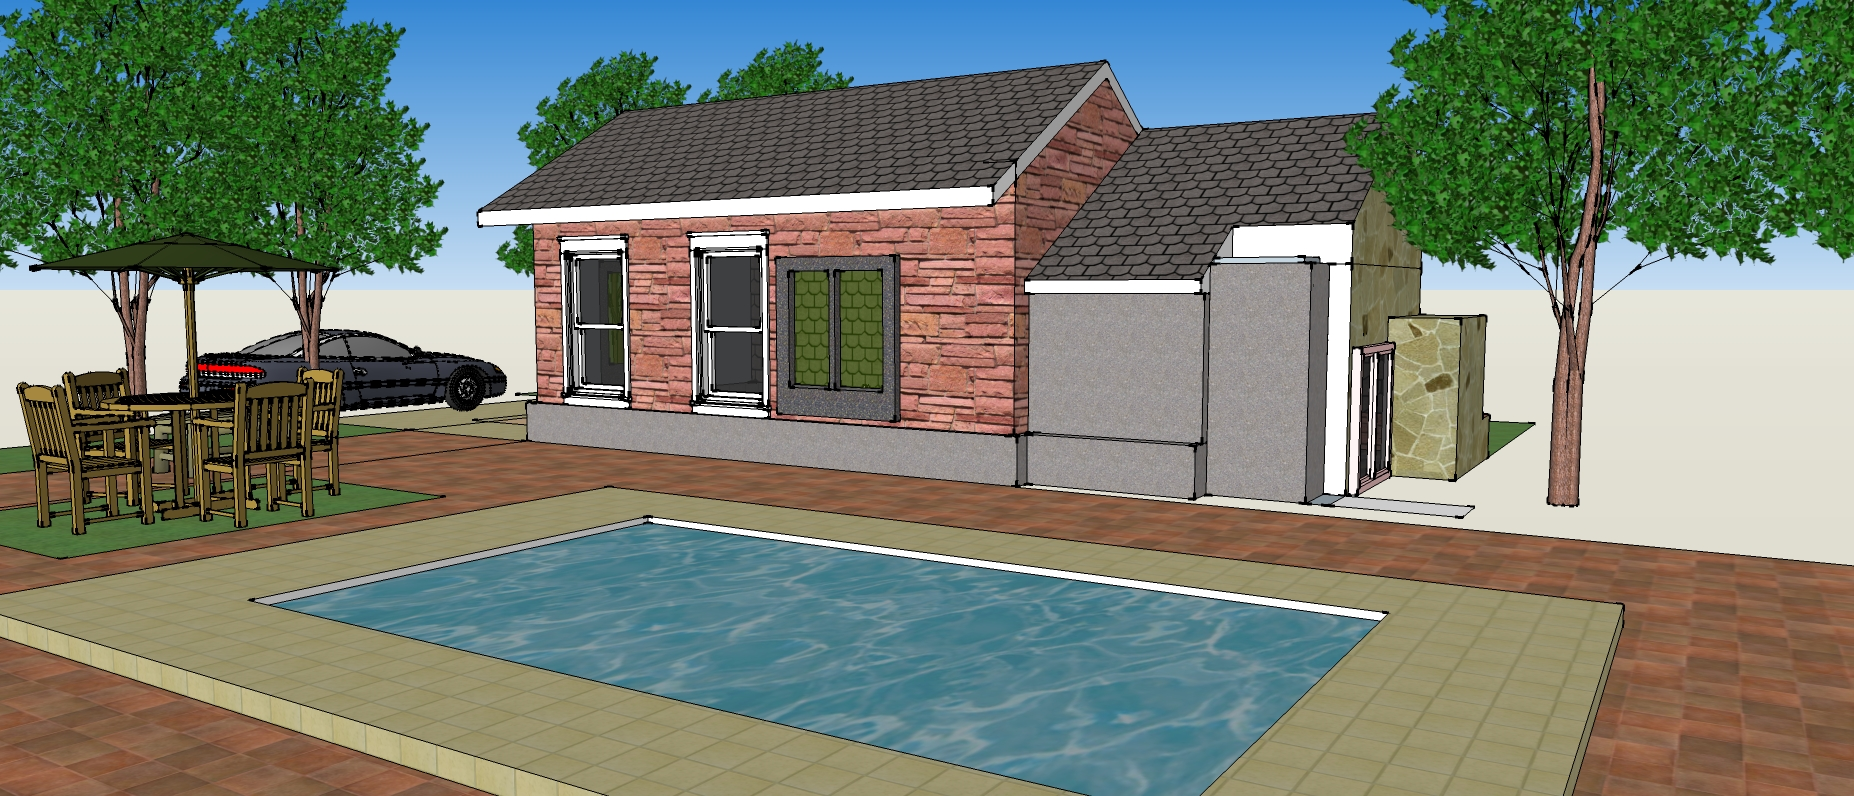 V ray rendering for sketchup joe larano arts architecture for Sample house